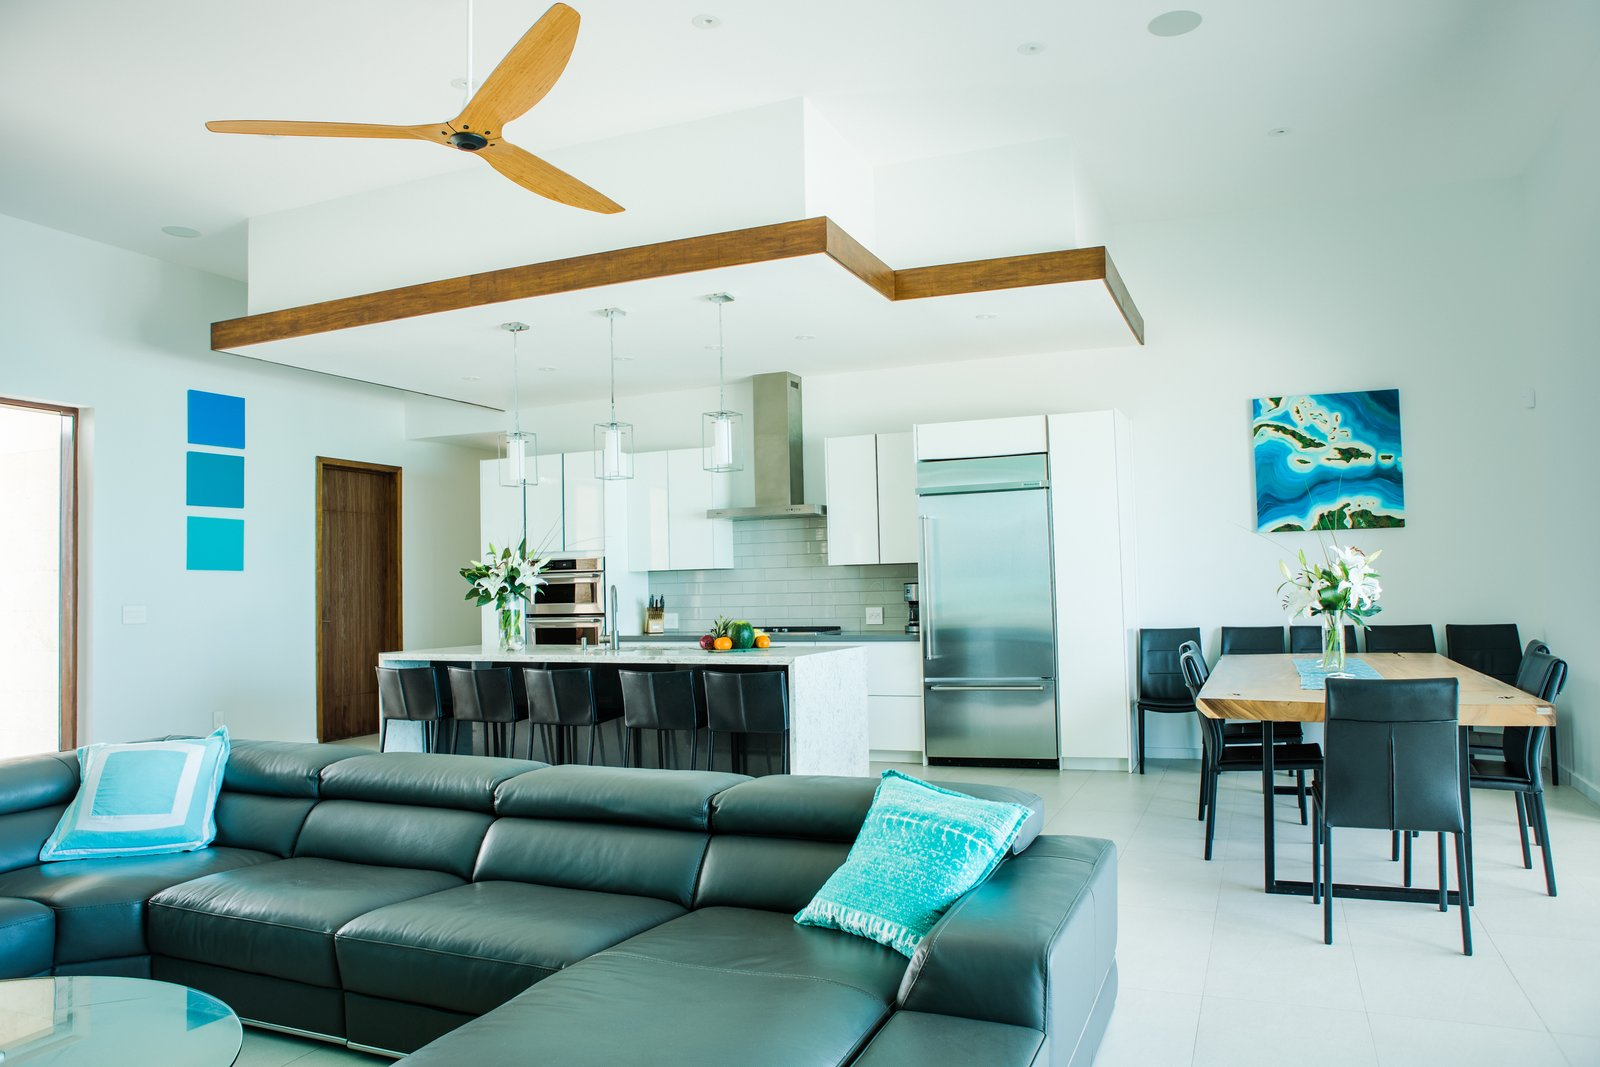 Sofa, Sectional, Kitchen, White Cabinet, Pendant Lighting, and Refrigerator  Tip of the Tail Villa